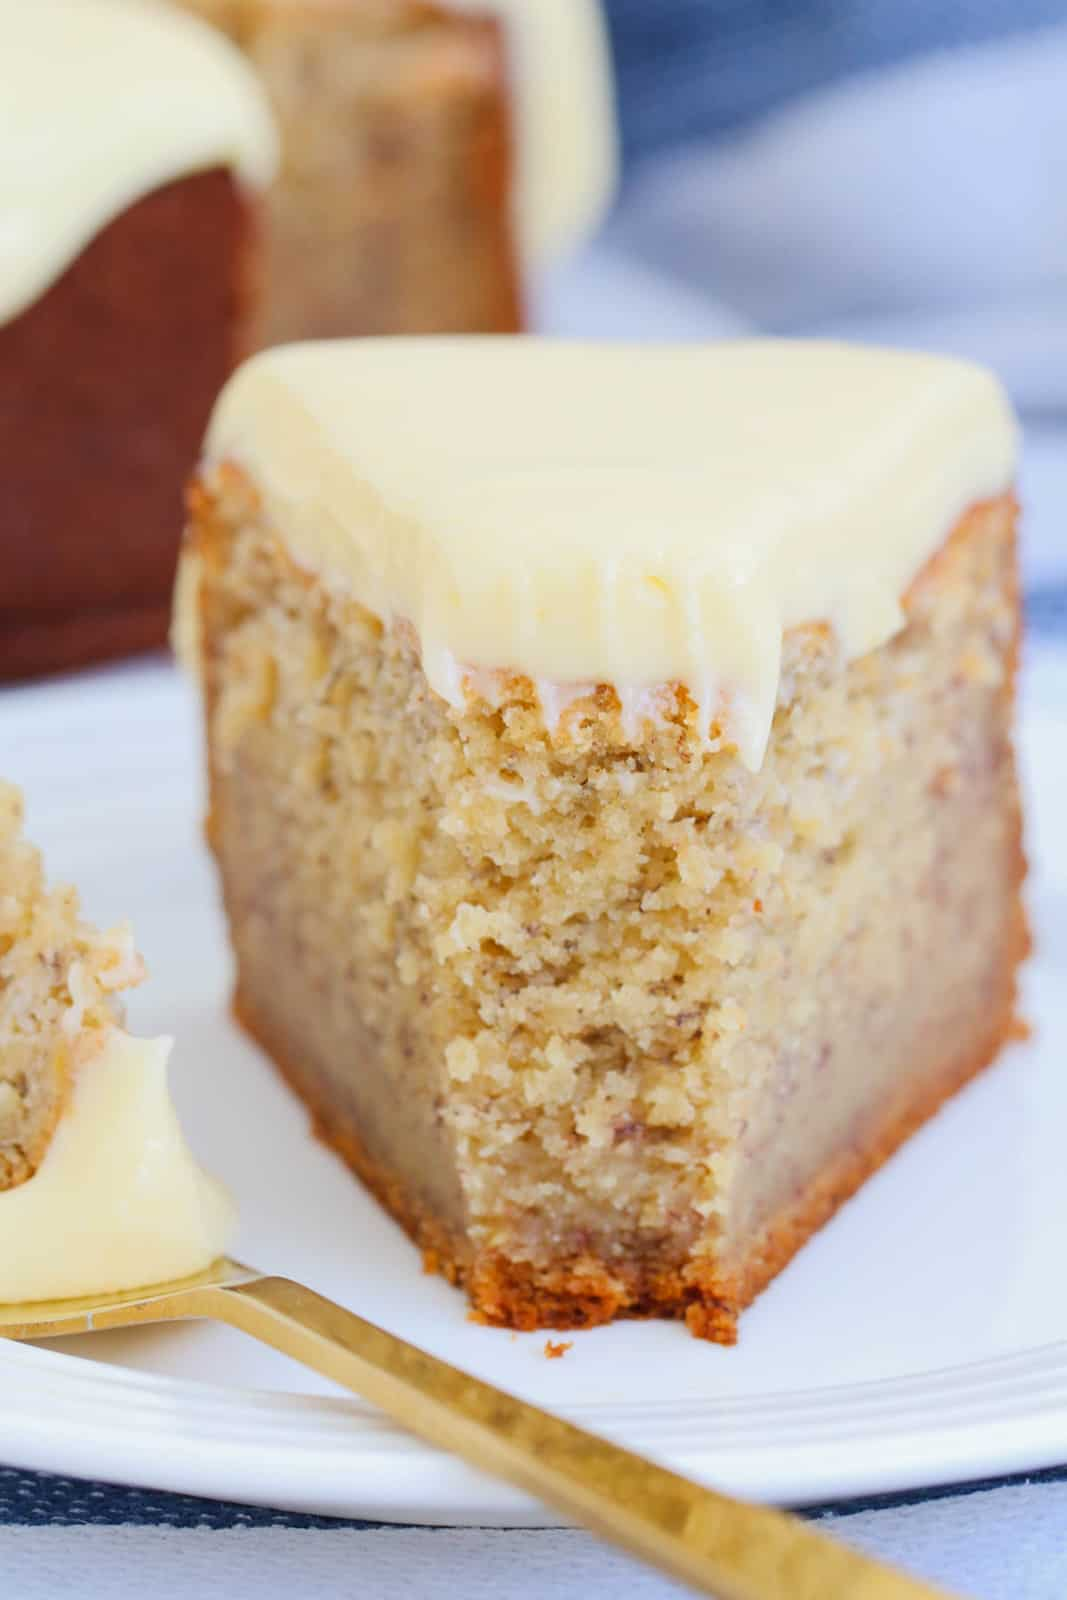 A close up of a serve of banana cake with frosting on a plate with a forkful beside.